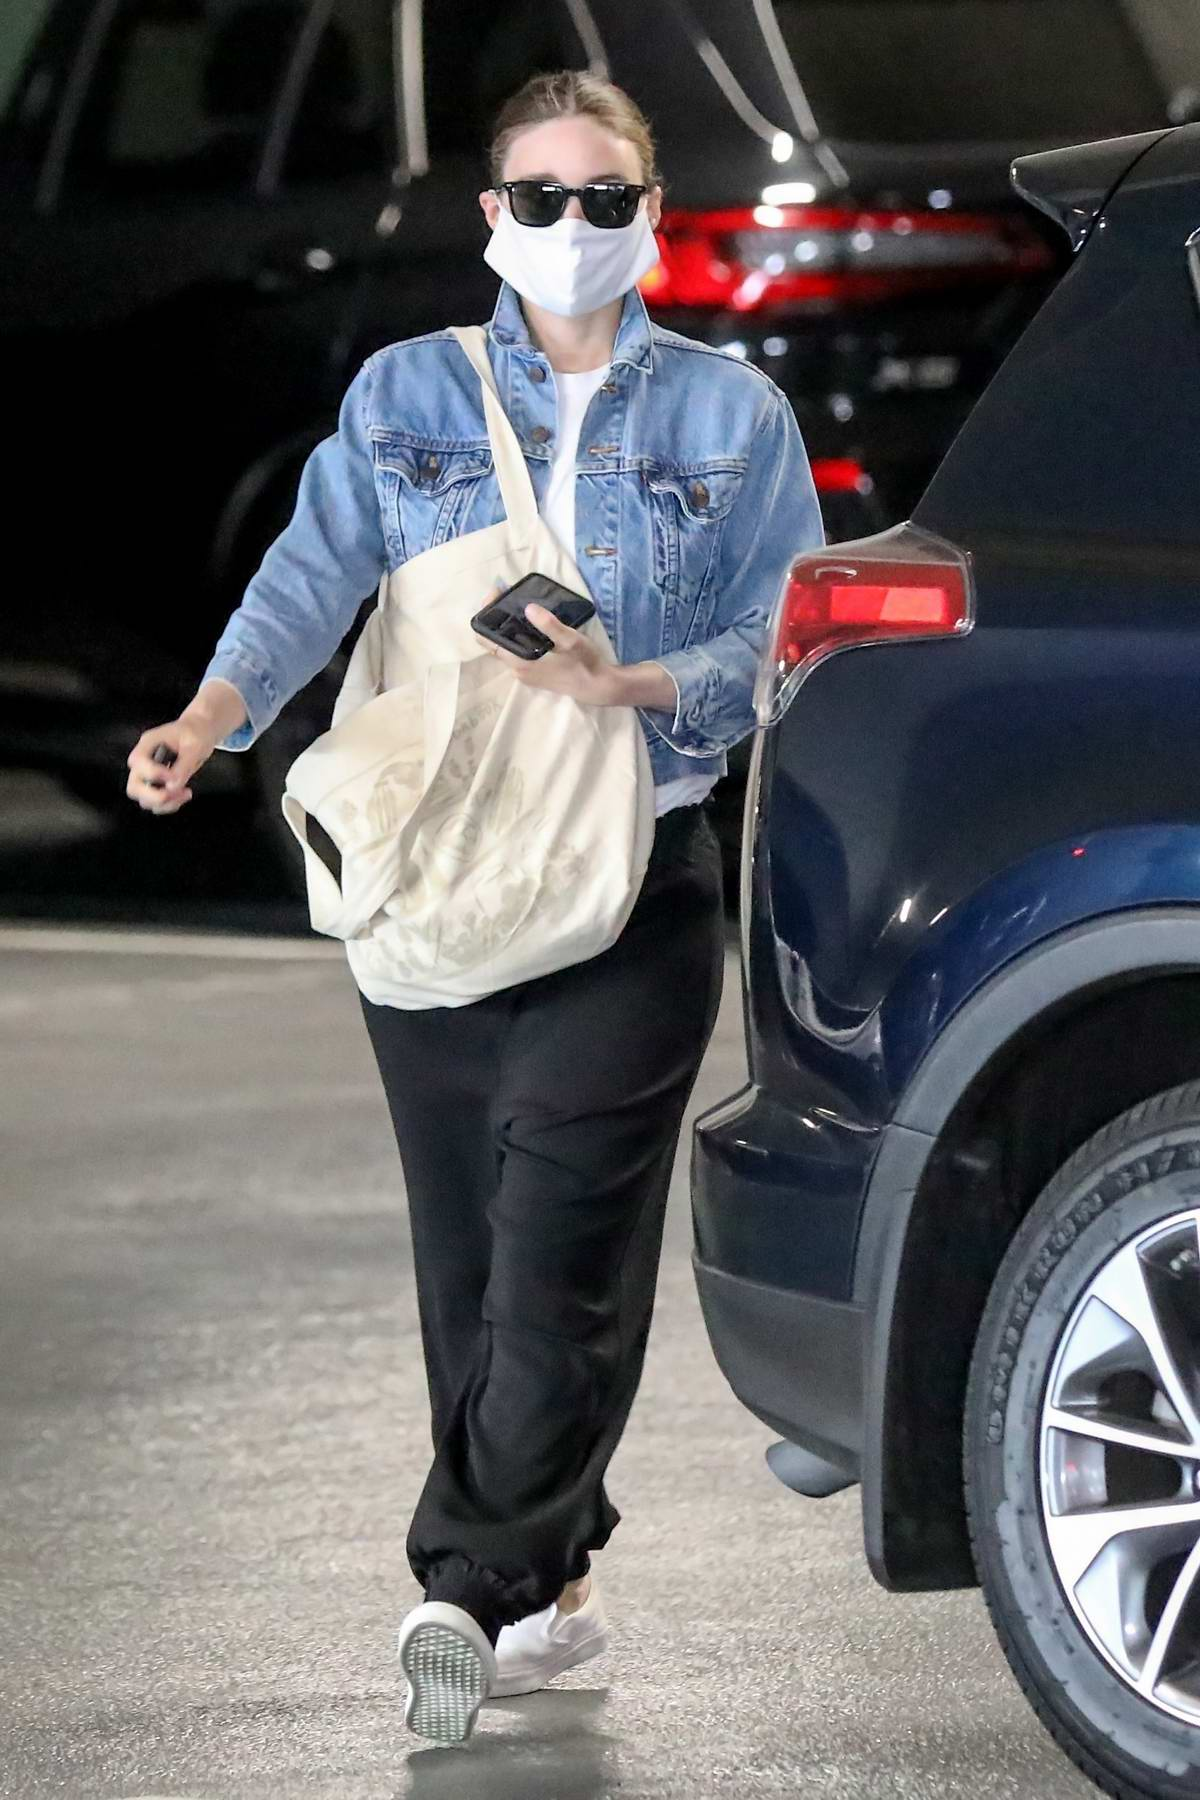 Rooney Mara covers up her belly with a bag as she heads to an appointment in Beverly Hills, California